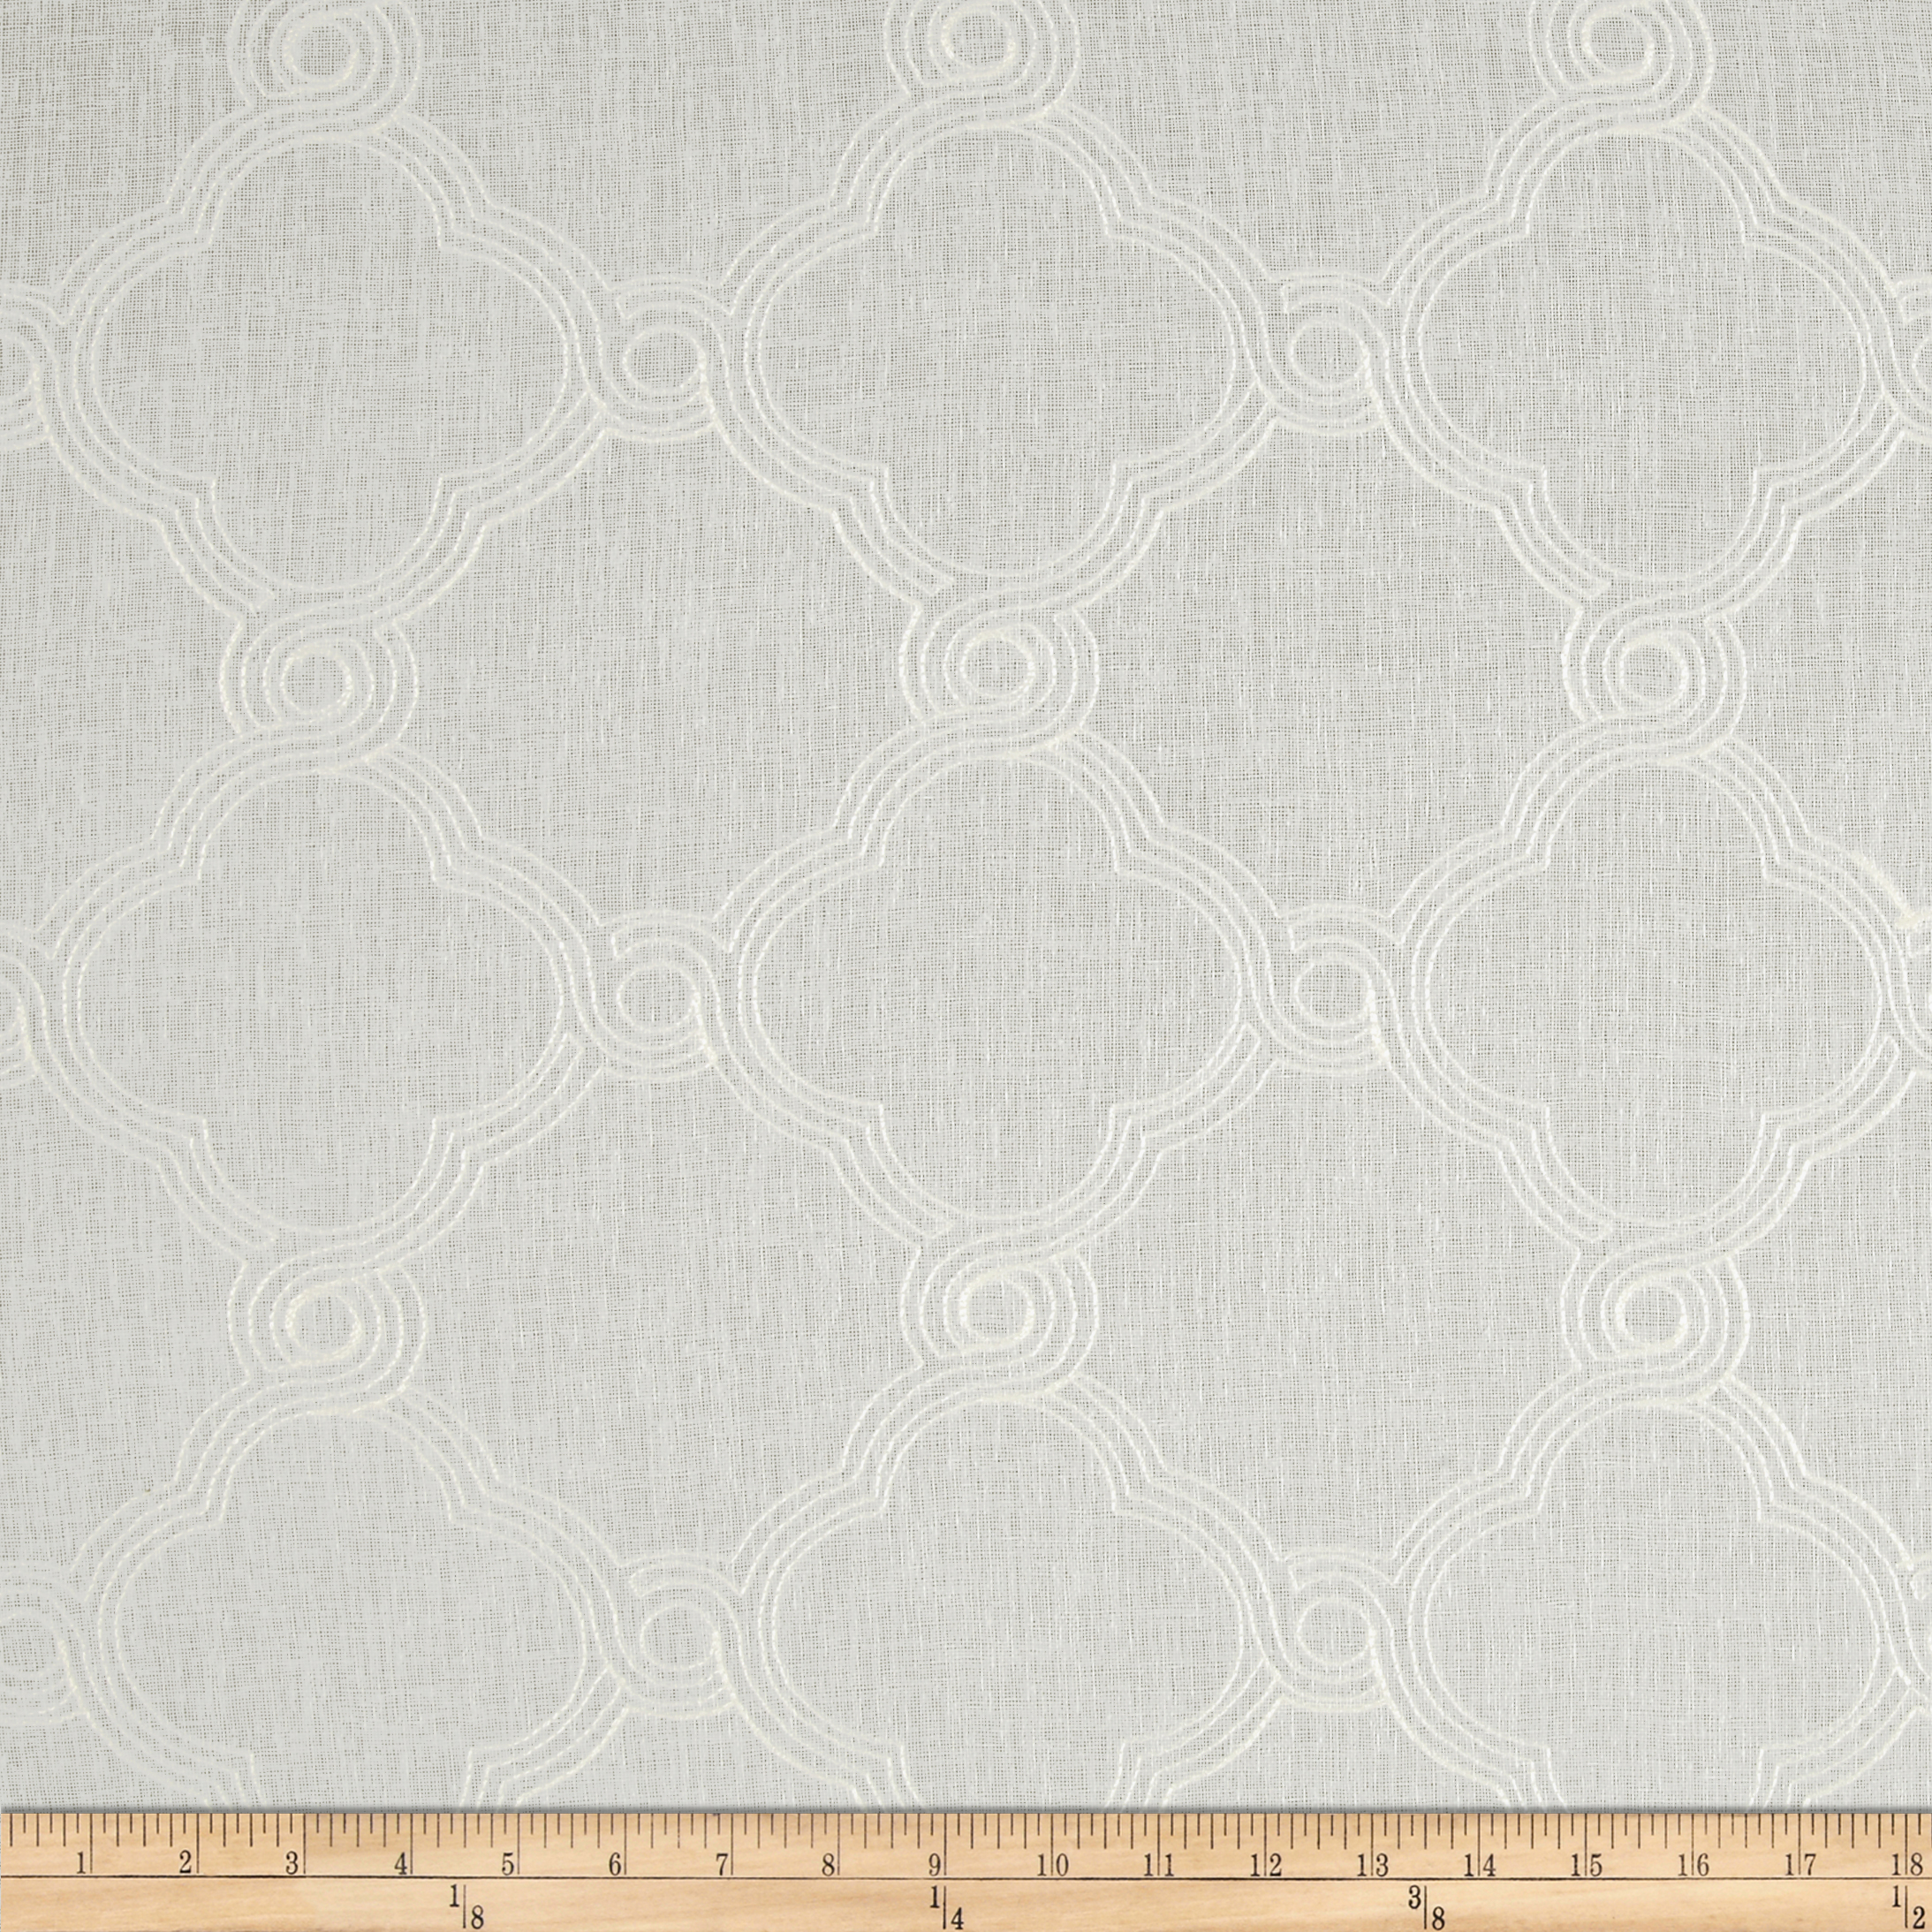 World Wide Faux Linen Sheer Eva White